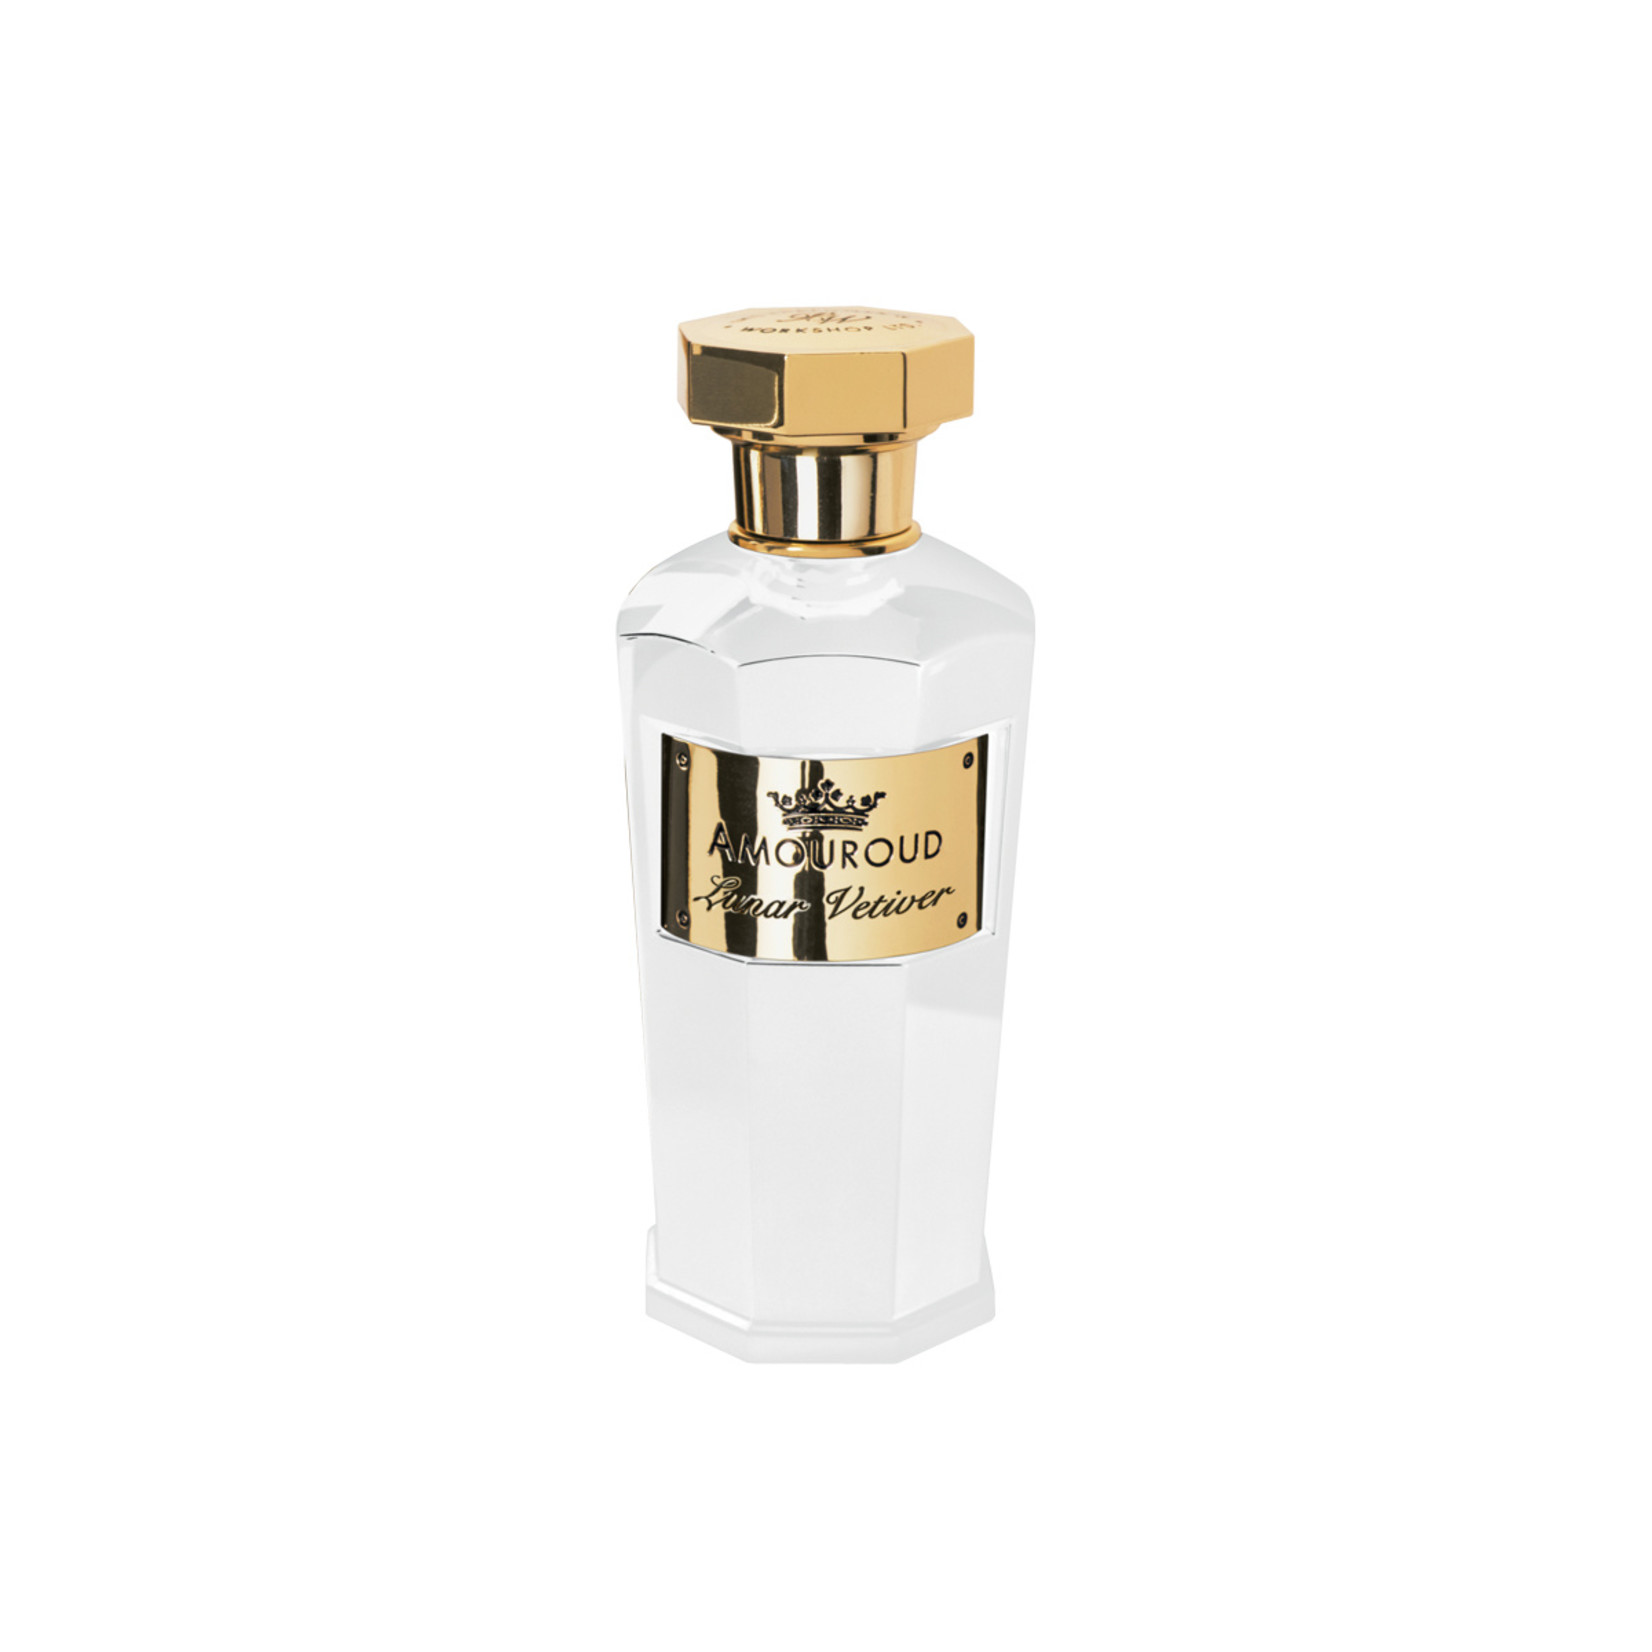 AMOUROUD AMOUROUD · LUNAR VETIVER 100ML